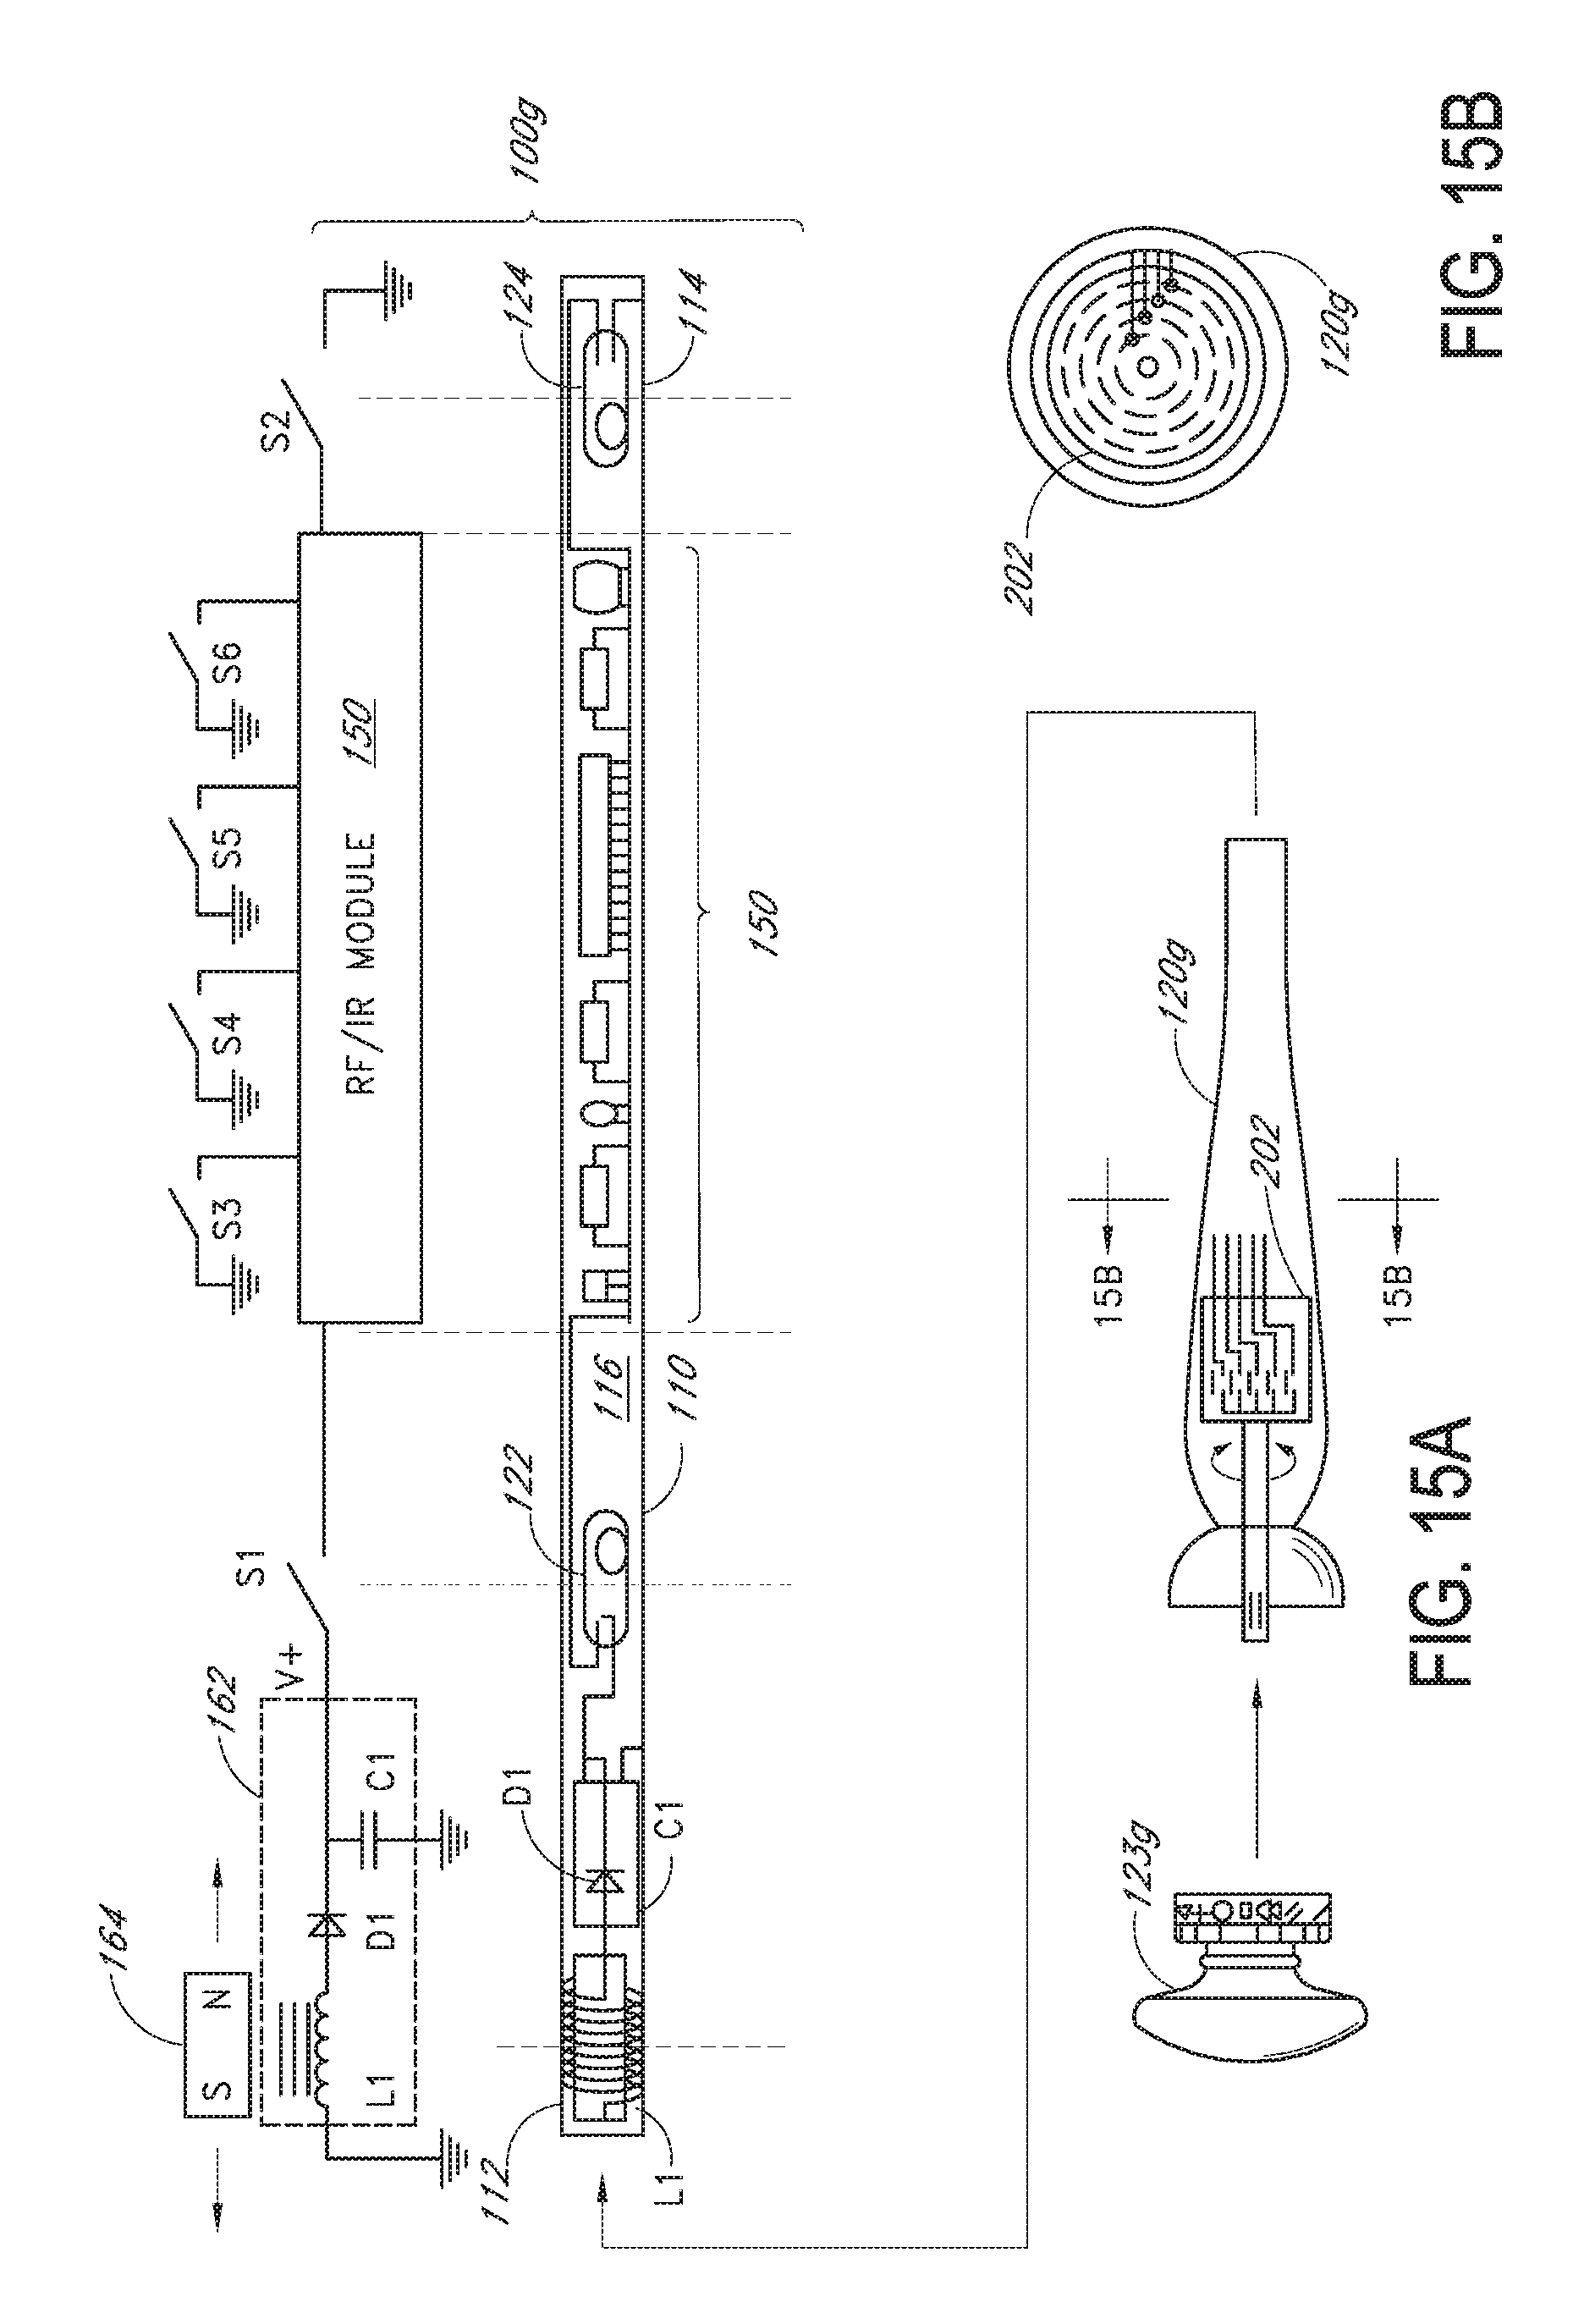 Patent Us 9814973 B2 Simple Fm Transmitter Circuit Group Picture Image By Tag